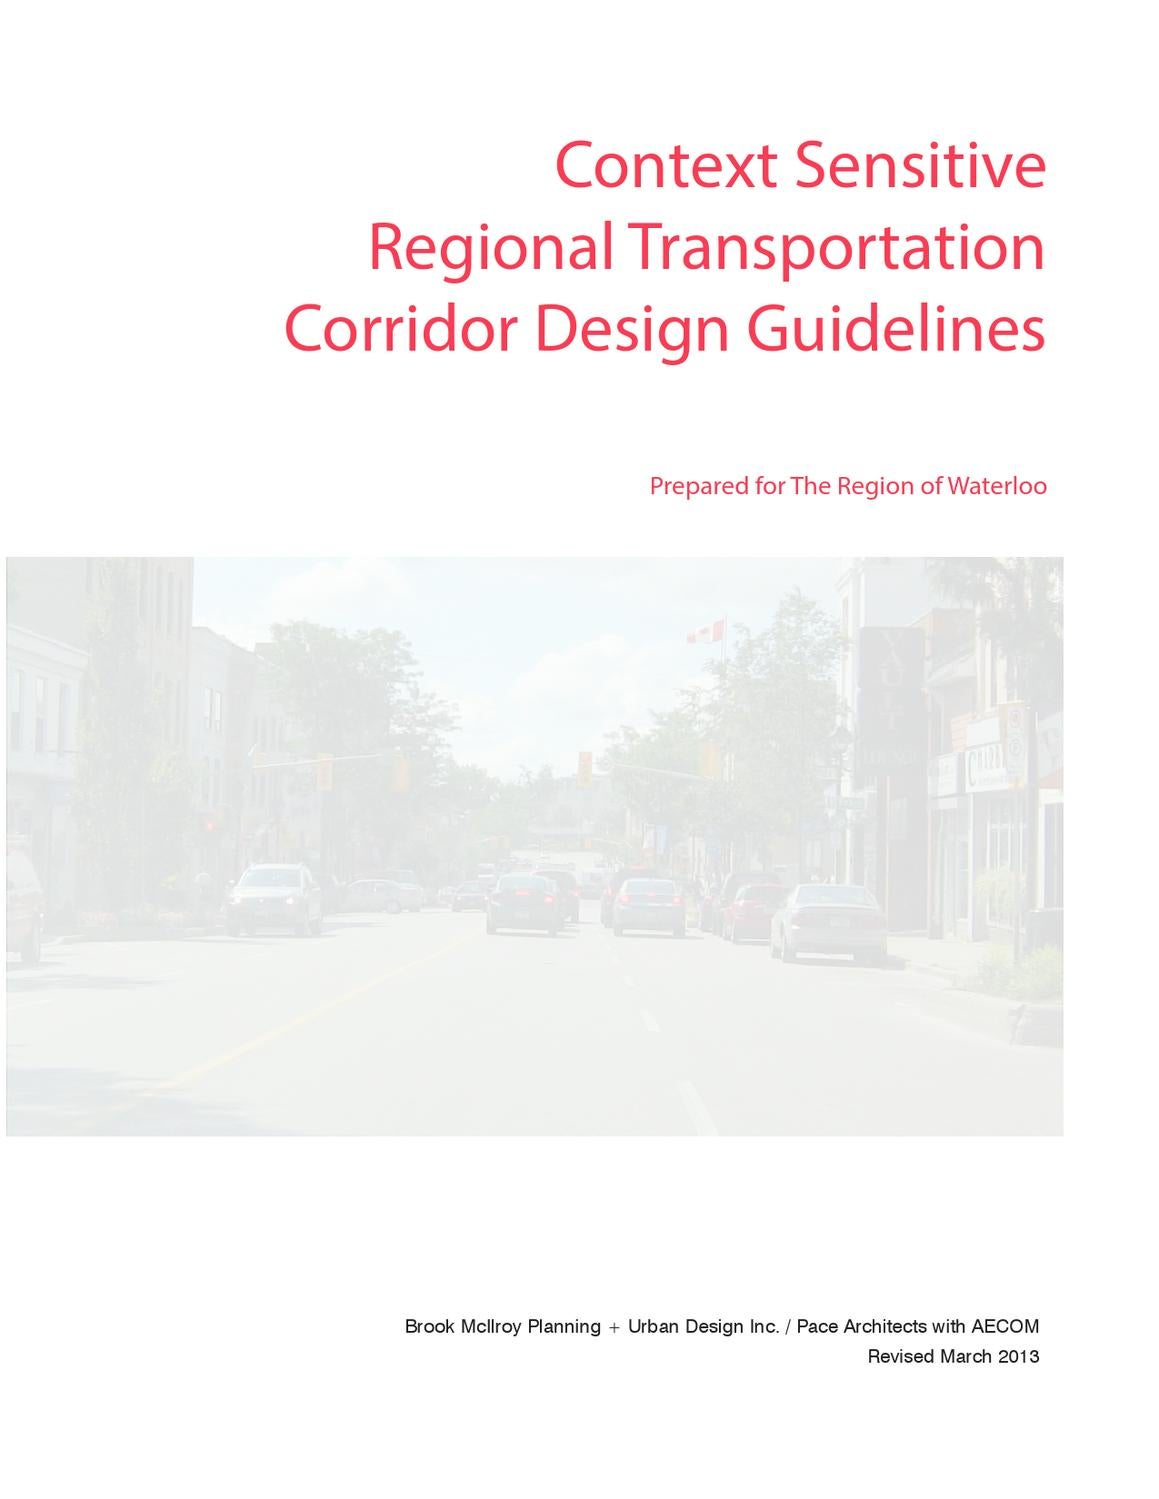 Context Sensitive Regional Transportation Corridor Design Guidelines